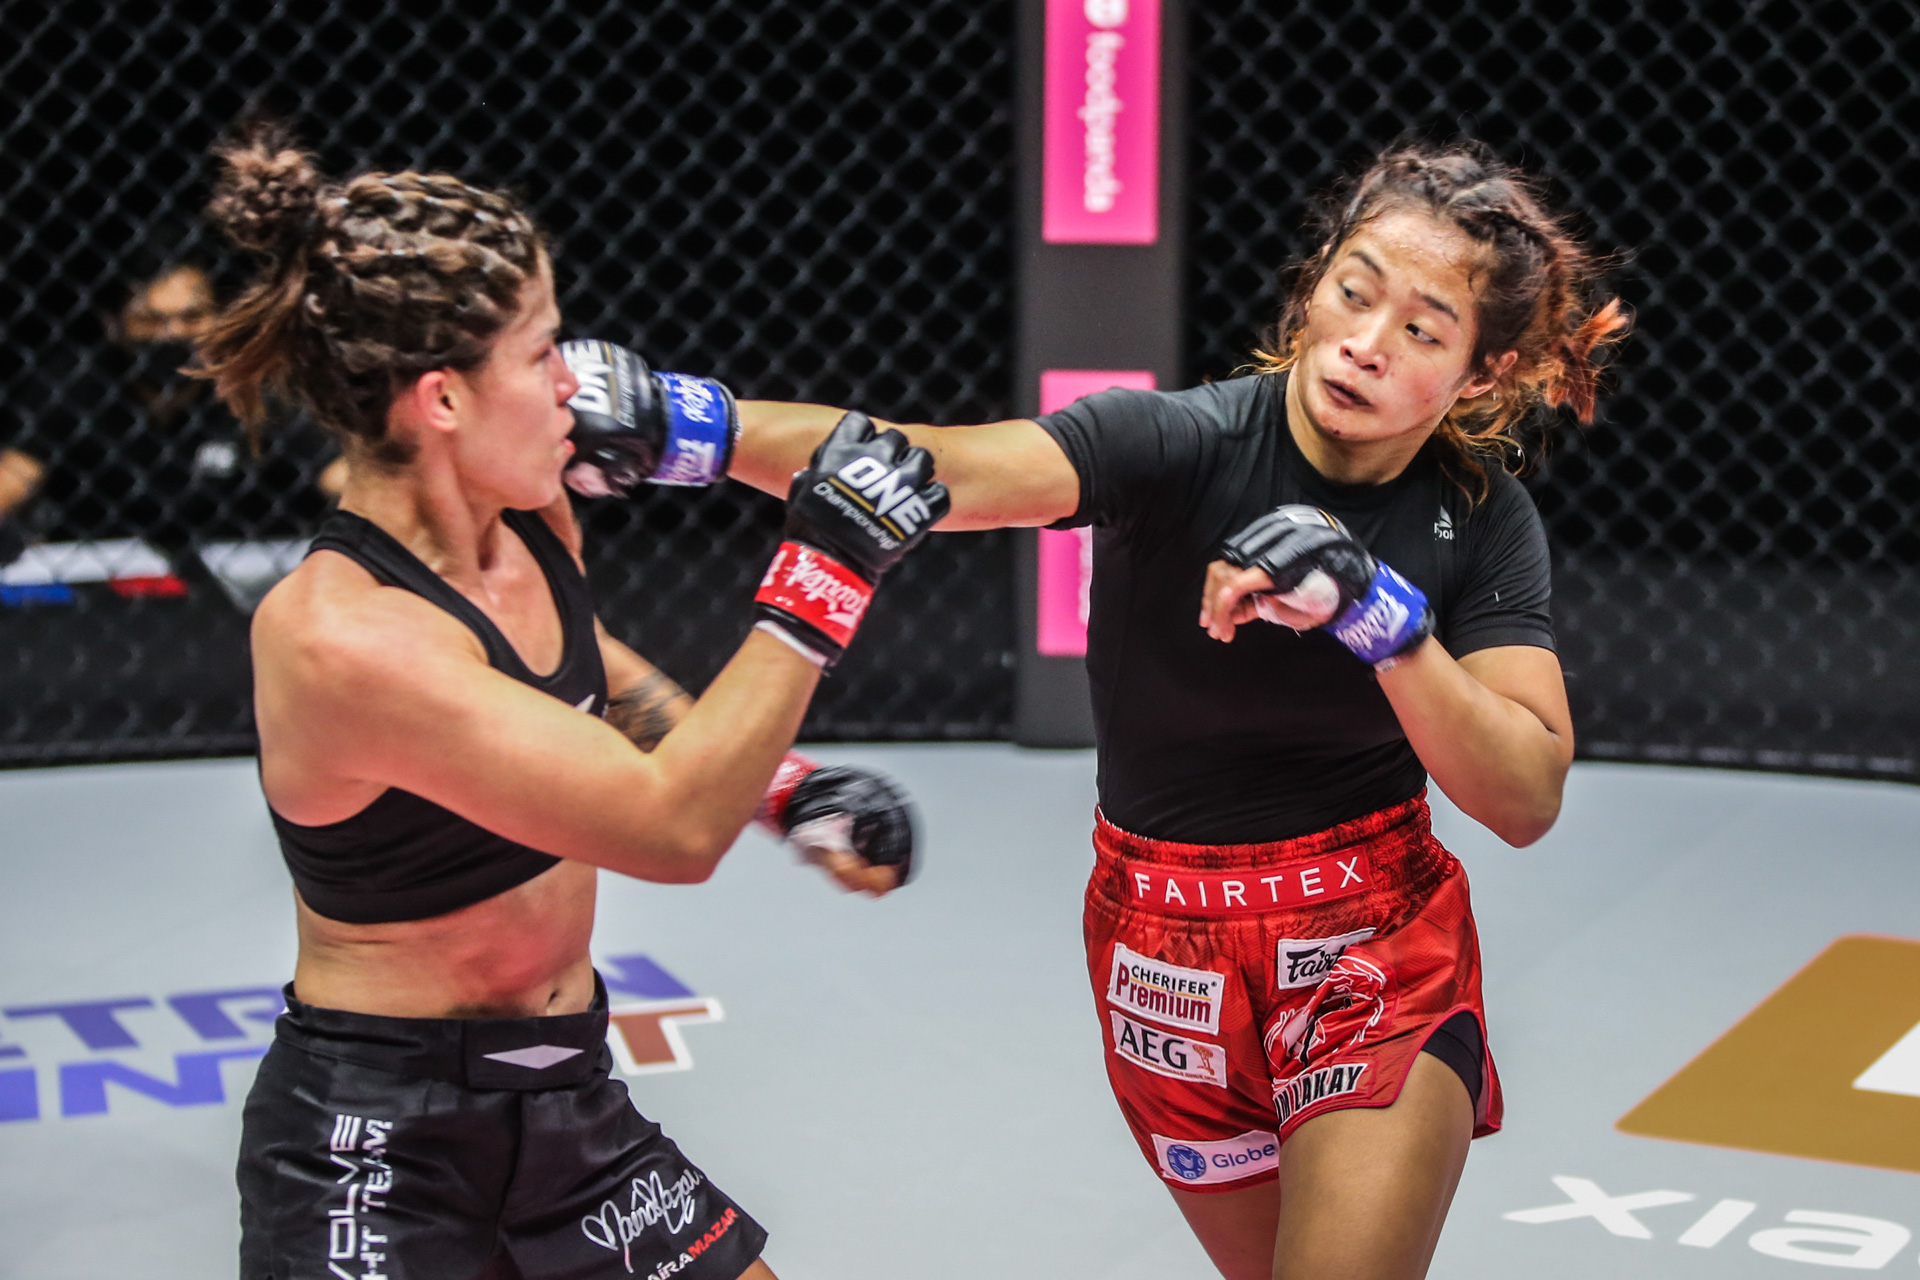 ONE-Fists-of-Fury-III-Jenelyn-Olsim-def-Maira-Mazar-punch Jenelyn Olsim gets another chance to enter ONE GP Mixed Martial Arts News ONE Championship  - philippine sports news